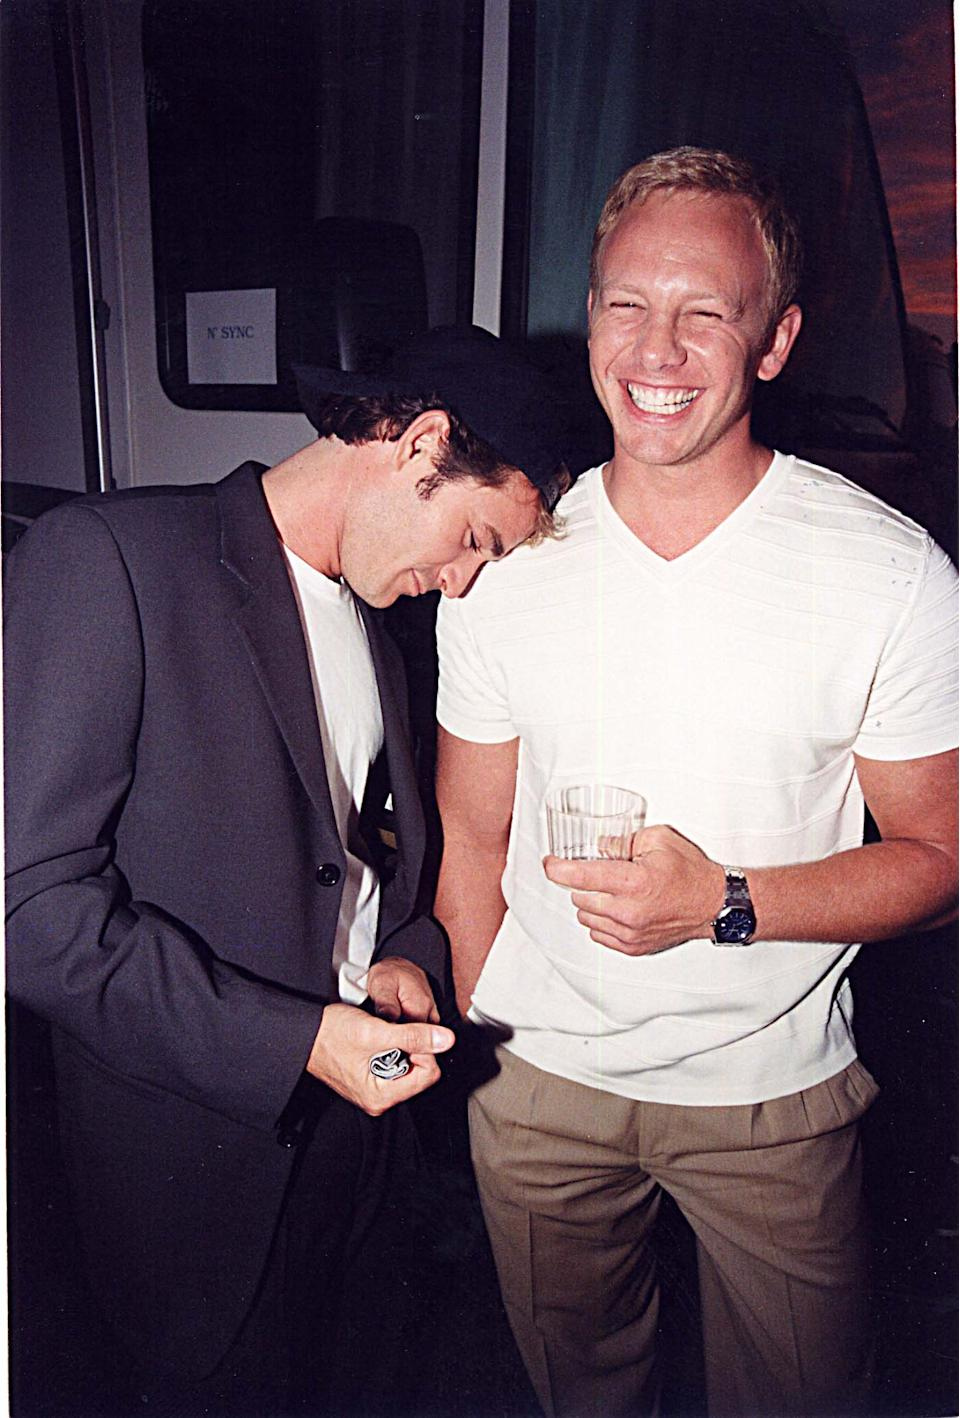 Luke Perry & Ian Ziering at the 1999 Teen Choice Awards in Los Angeles. (Photo by Jeff Kravitz/FilmMagic, Inc)